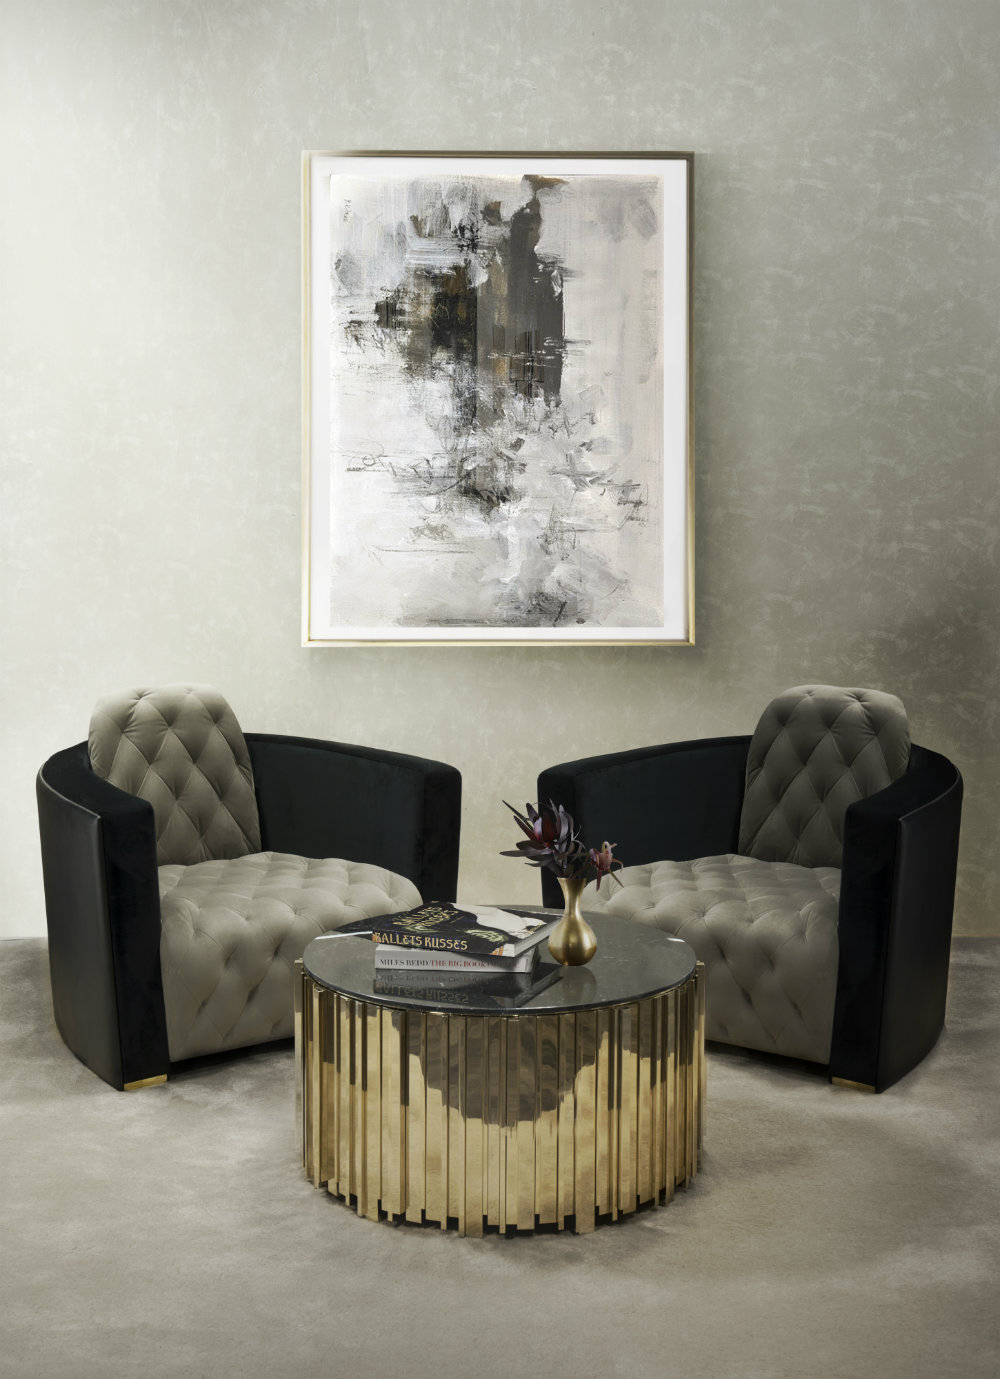 Luxury Center Tables You Need To Add To Your Home Décor